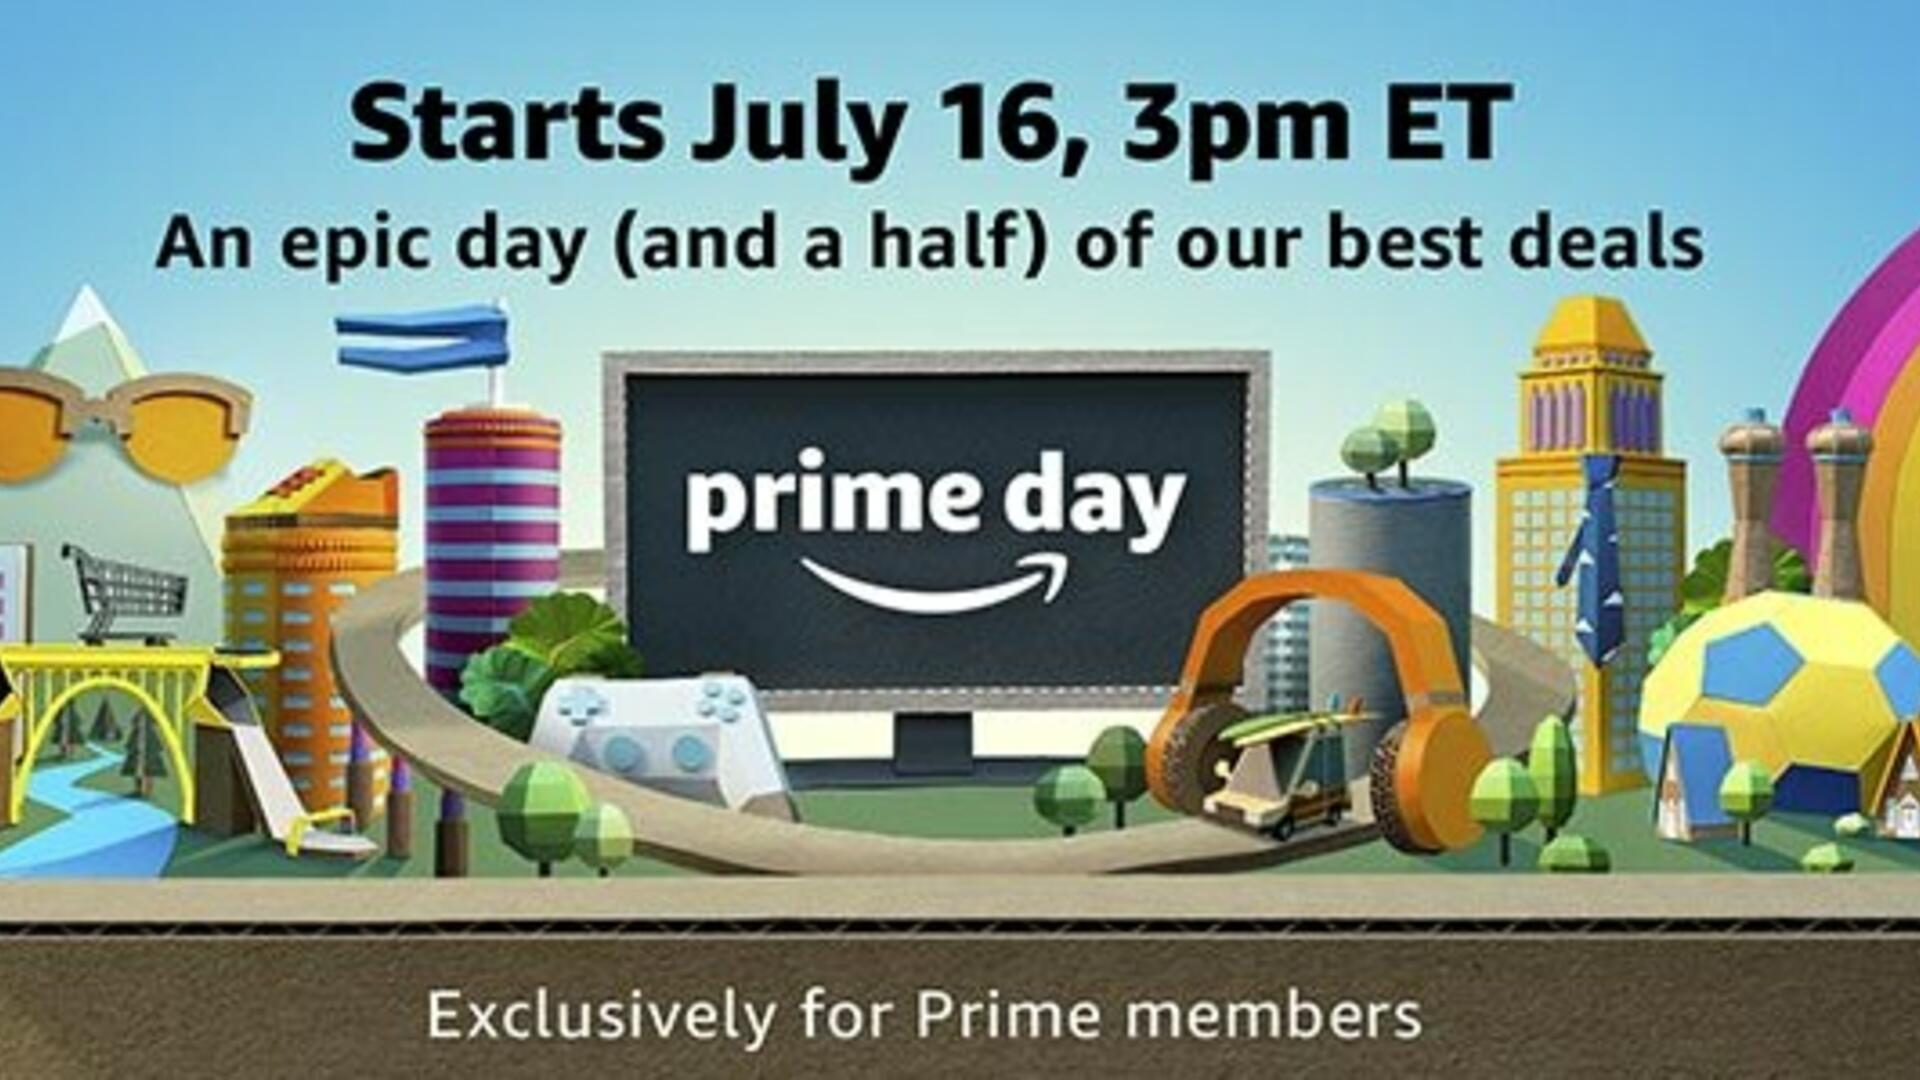 Amazon Prime Day 2018 Video Game Deals - Free PC Games, 4K